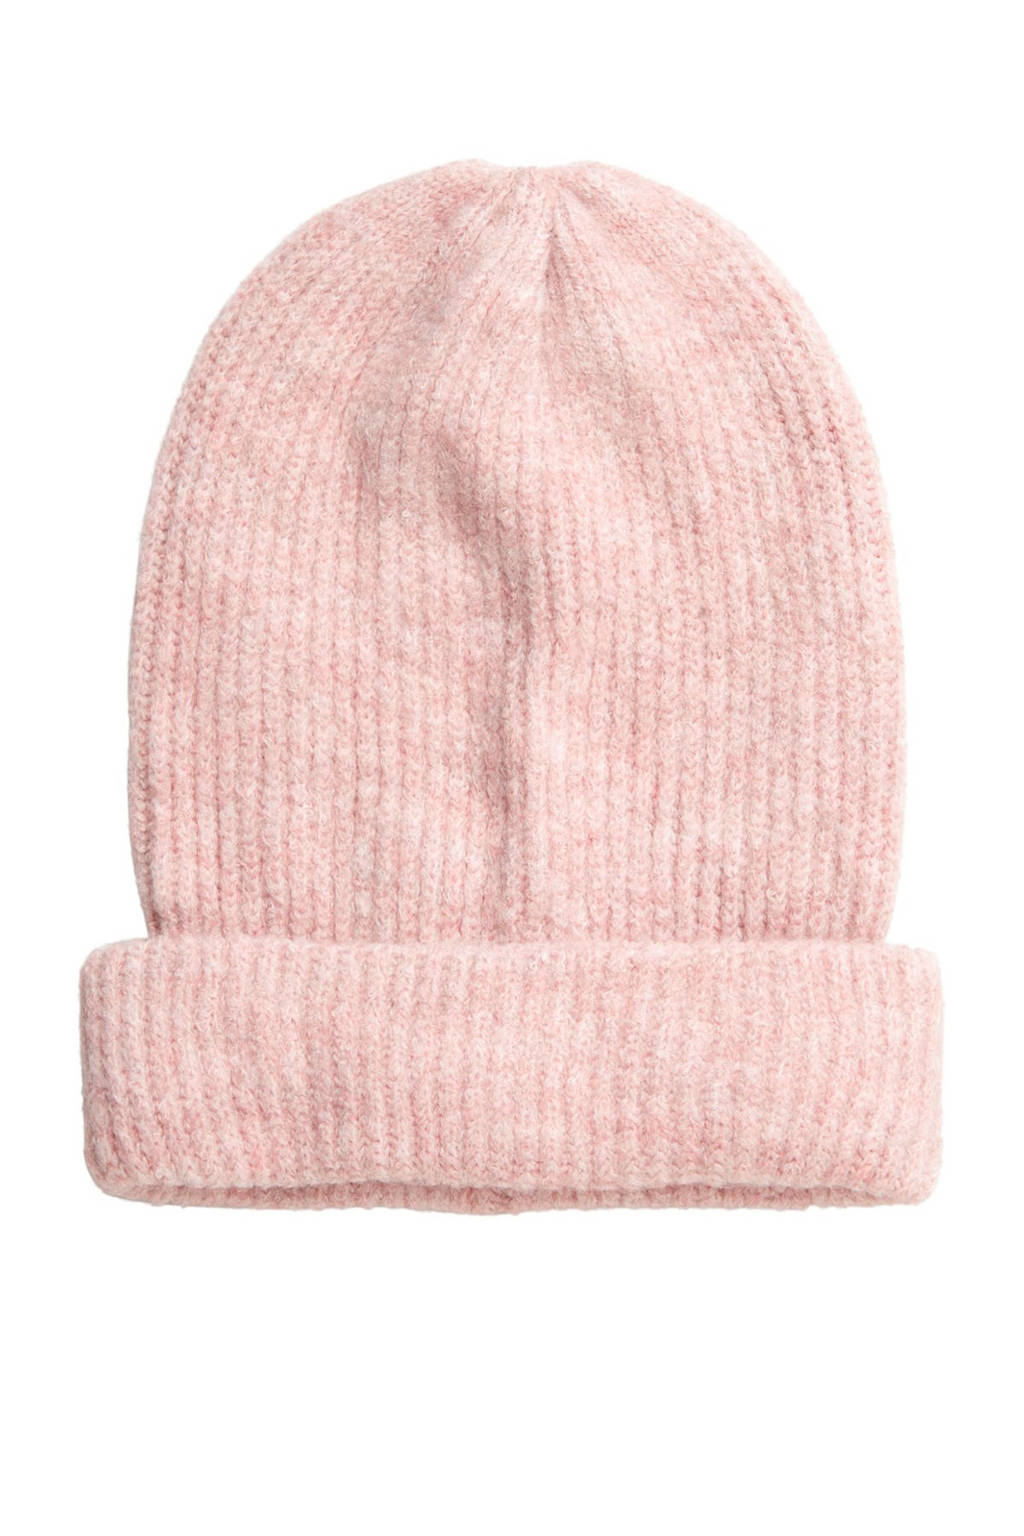 PIECES muts roze, Paars